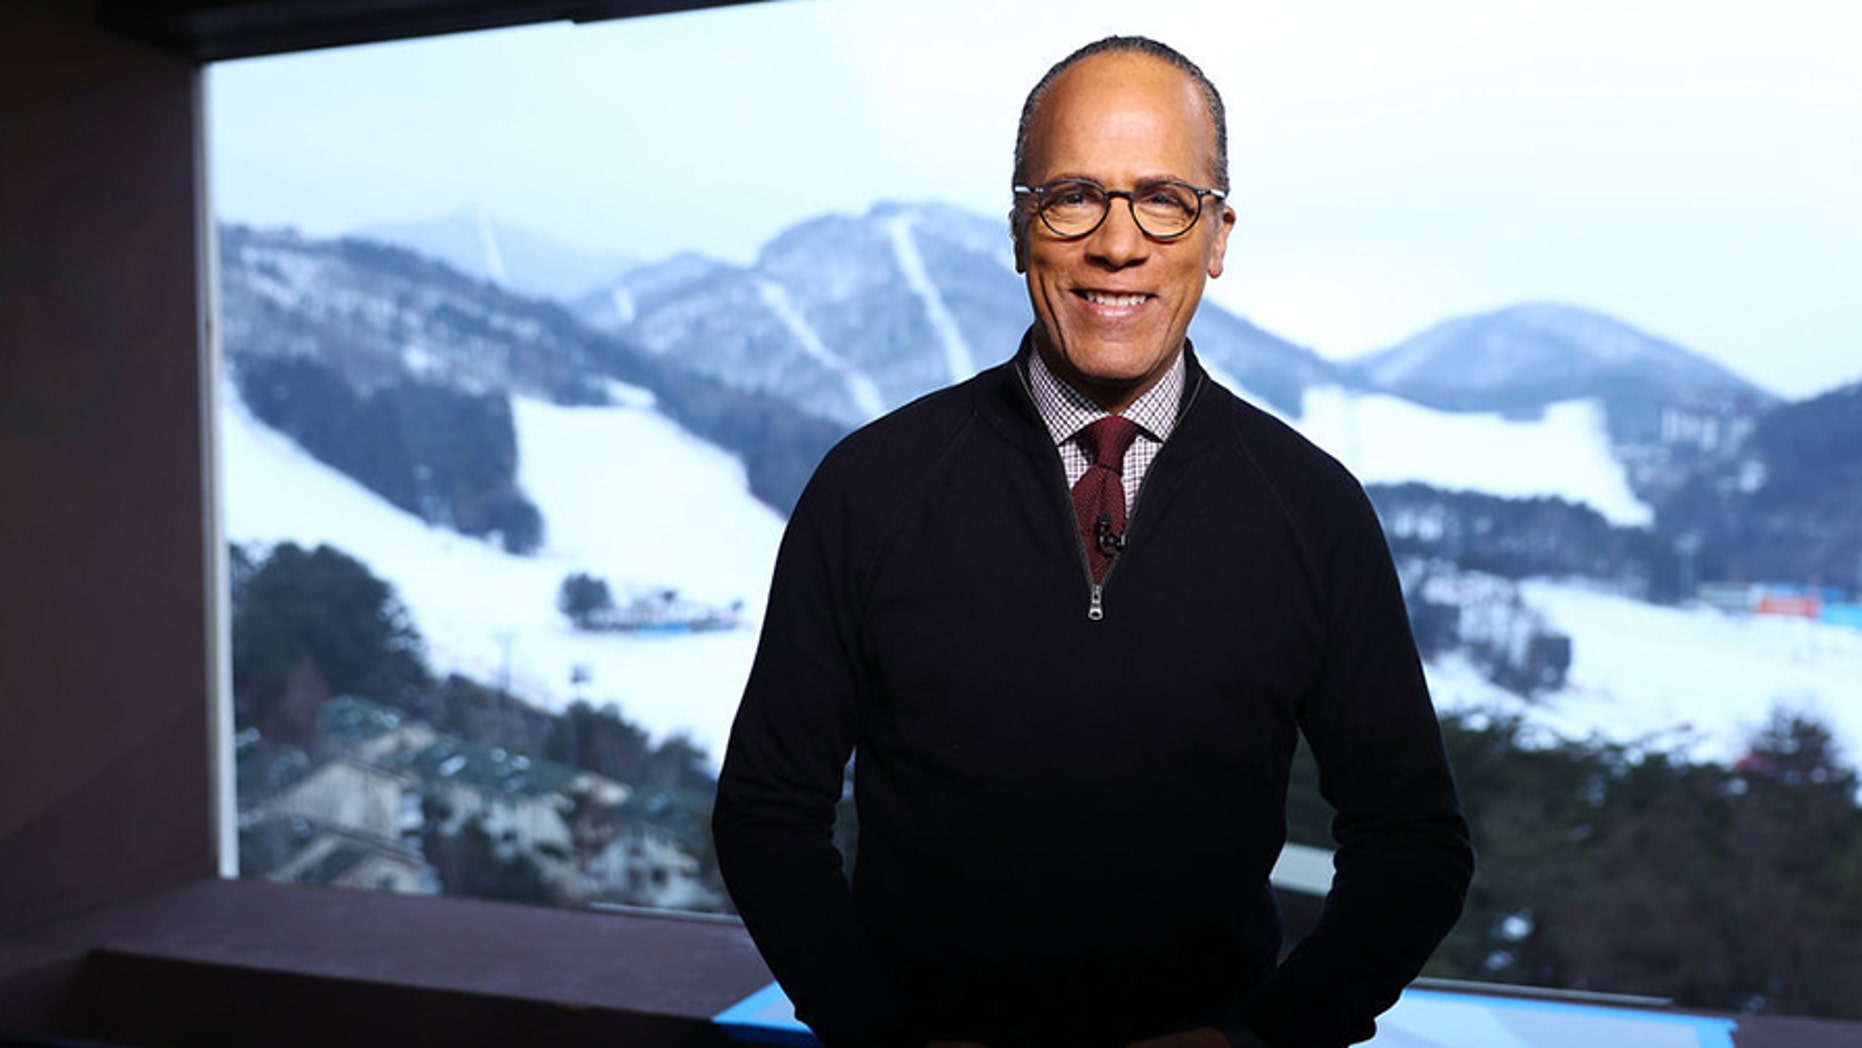 """NBC NIGHTLY NEWS WITH LESTER HOLT -- """"PyeongChang Olympics 2018"""" -- Pictured: (l-r) Lester Holt on Friday, February 9, 2018 -- (Photo by: Joe Scarnici/NBC)"""